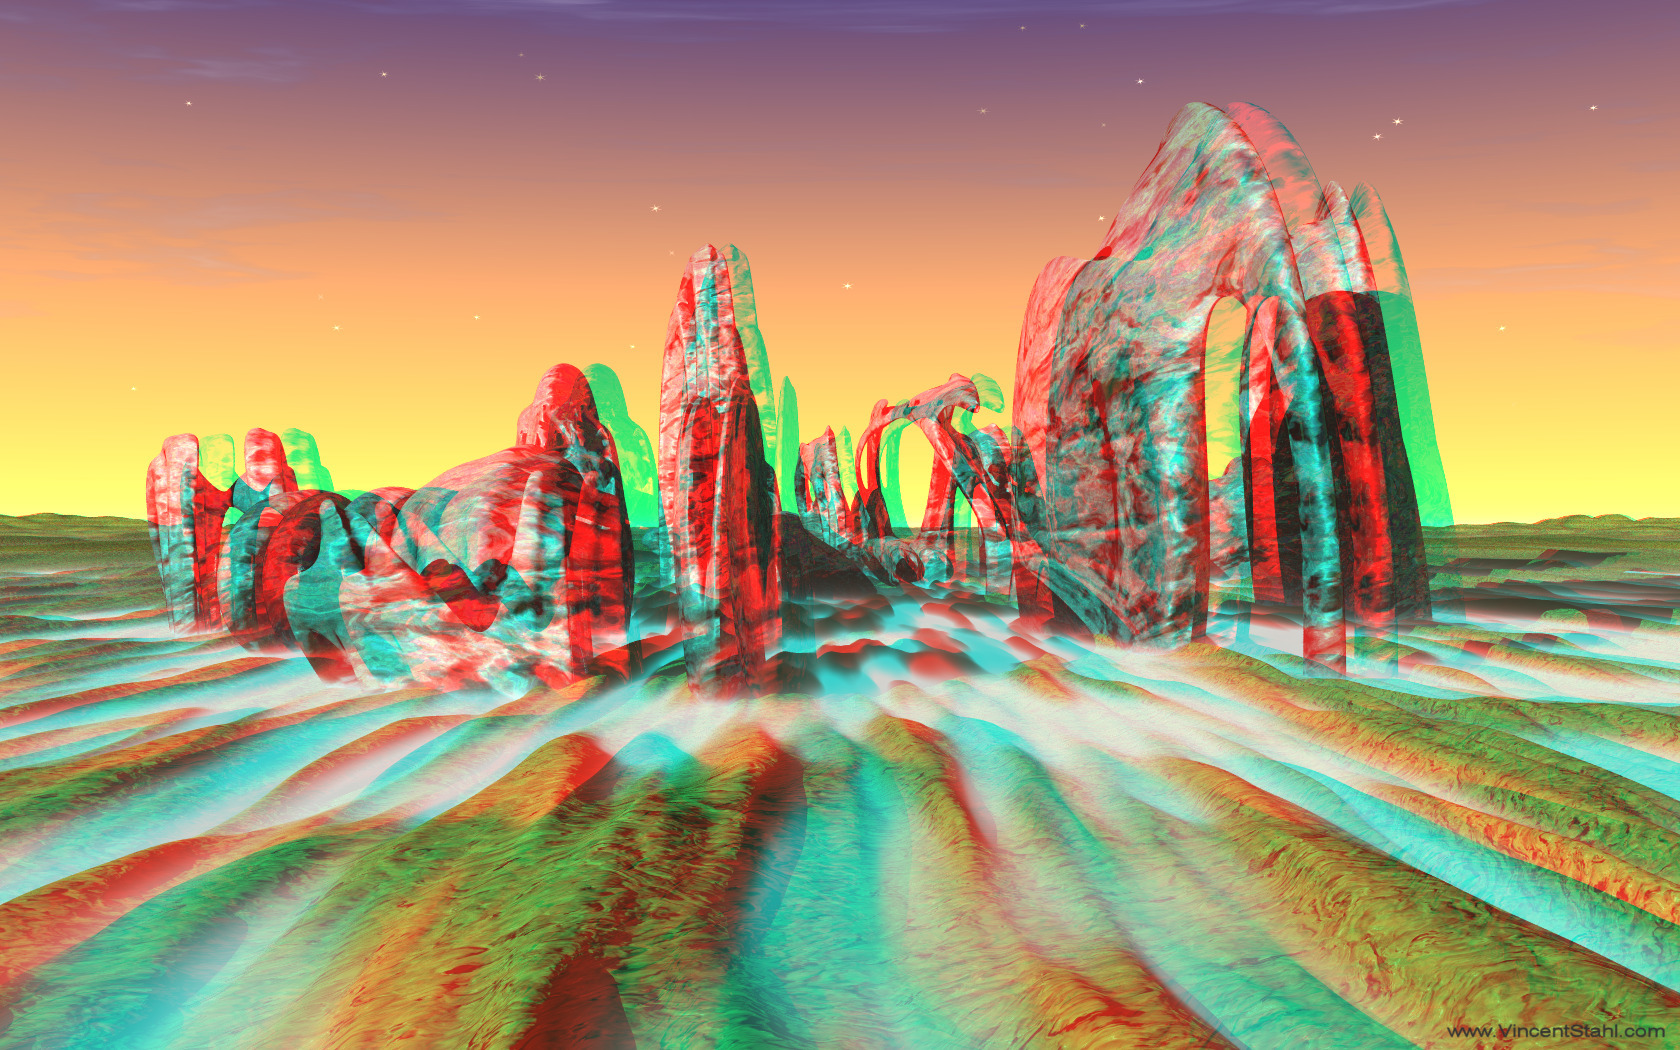 Sleeping Mammoth - 3D stereo anaglyph color